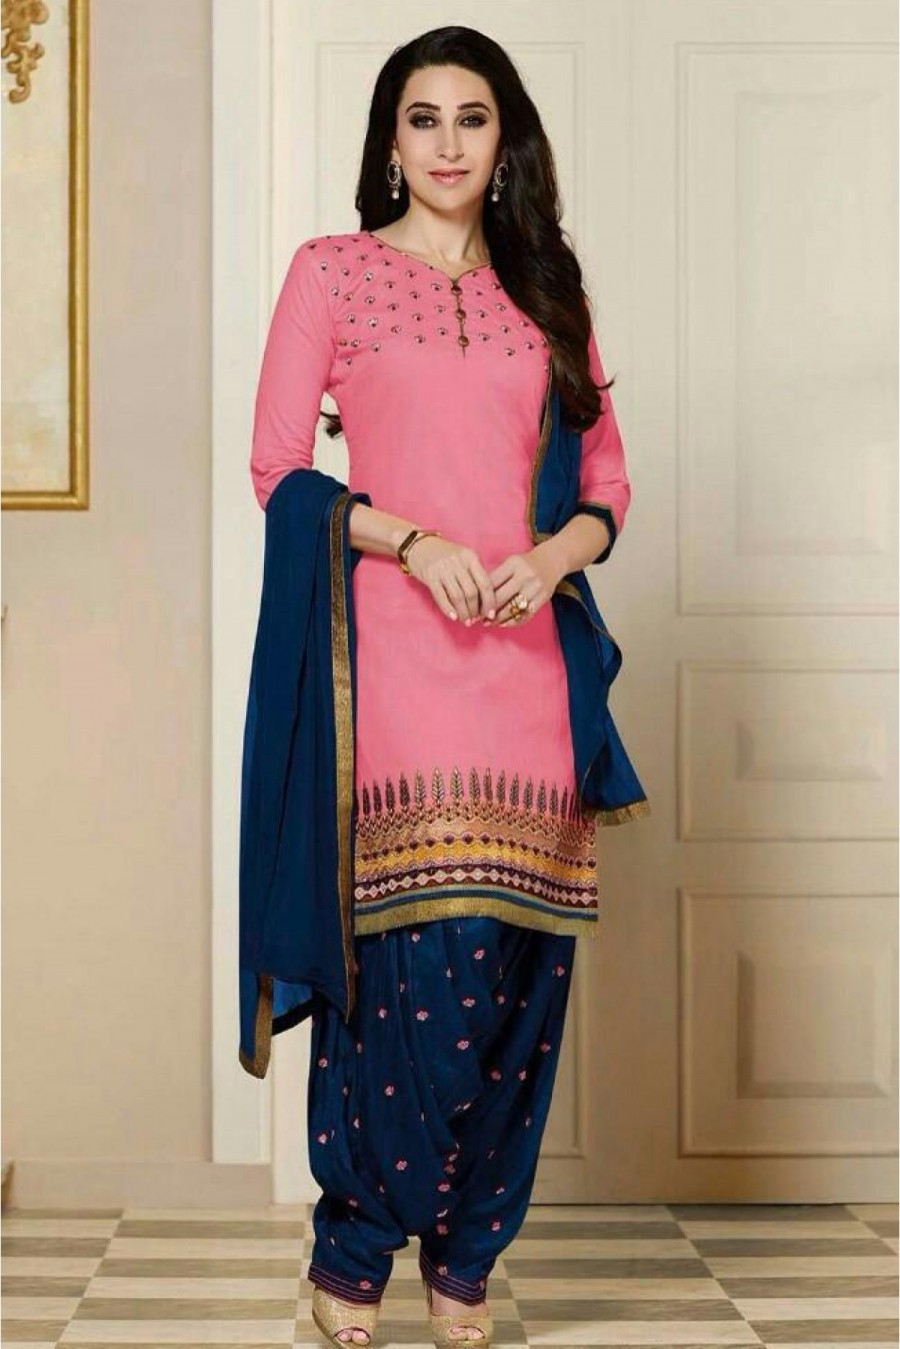 519a257a4b Buy Bollywood Karishma Kapoor Cotton Party Wear Patiala Suit in Pink Colour  Online